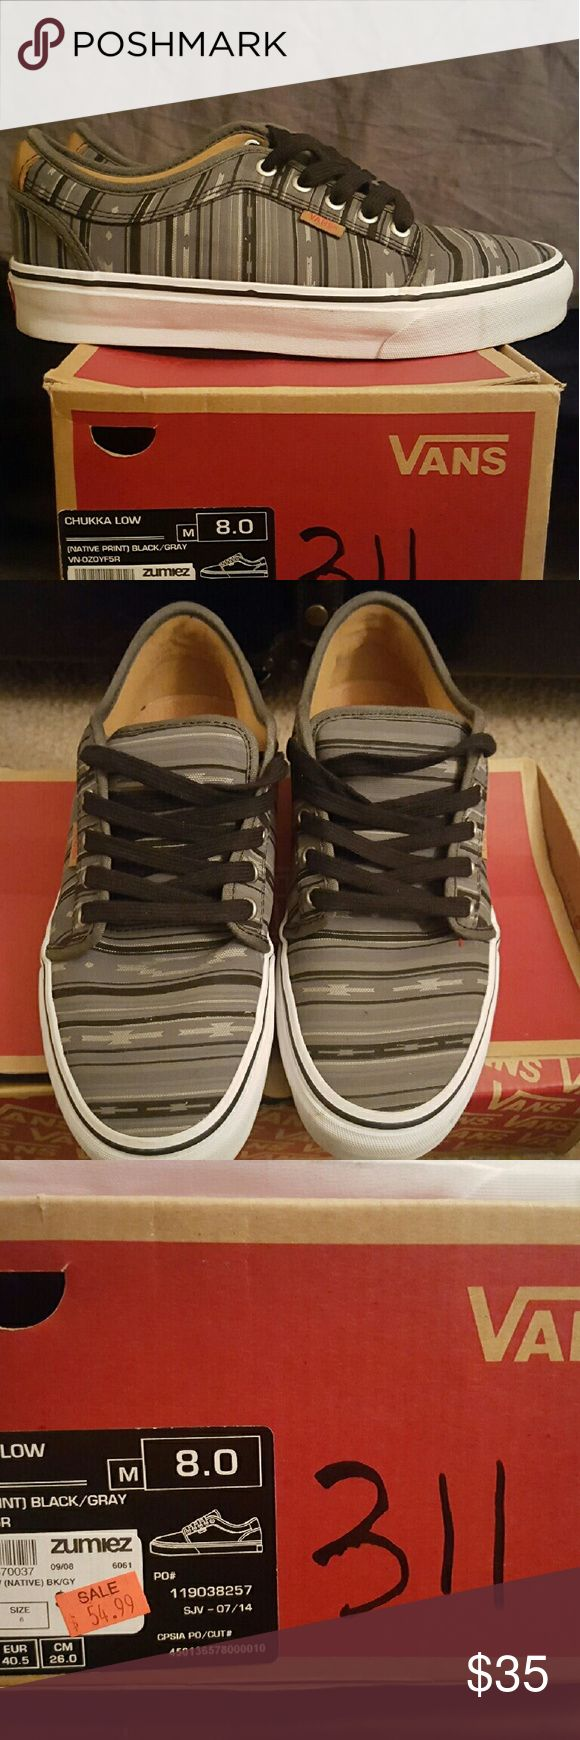 Vans Chukka Low Mens Shoes Size 8 Vans CHUKKA LOW  (Native Print) Black/Gray men's shoes. Size 8.  Work only once and come on the original box. Vans Shoes Sneakers